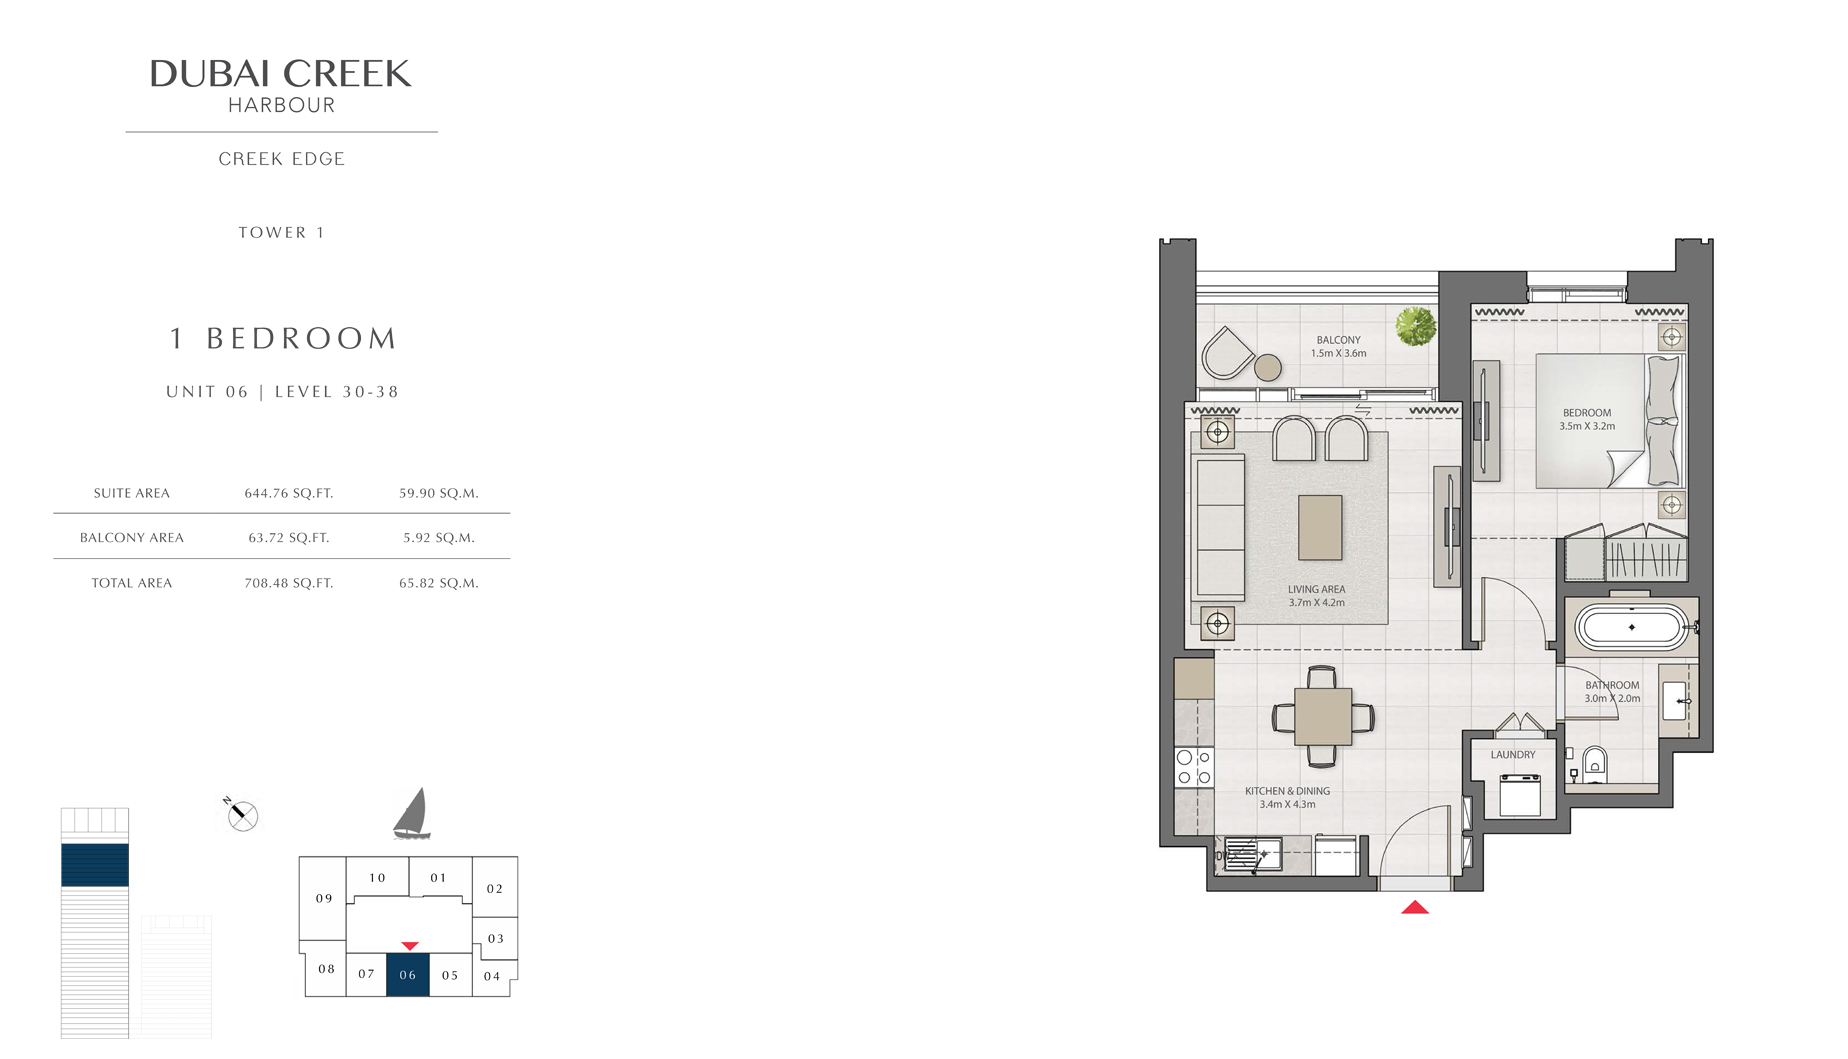 1 Bedroom Tower 1 Unit 06 Level 30-38 Size 708 sq.ft